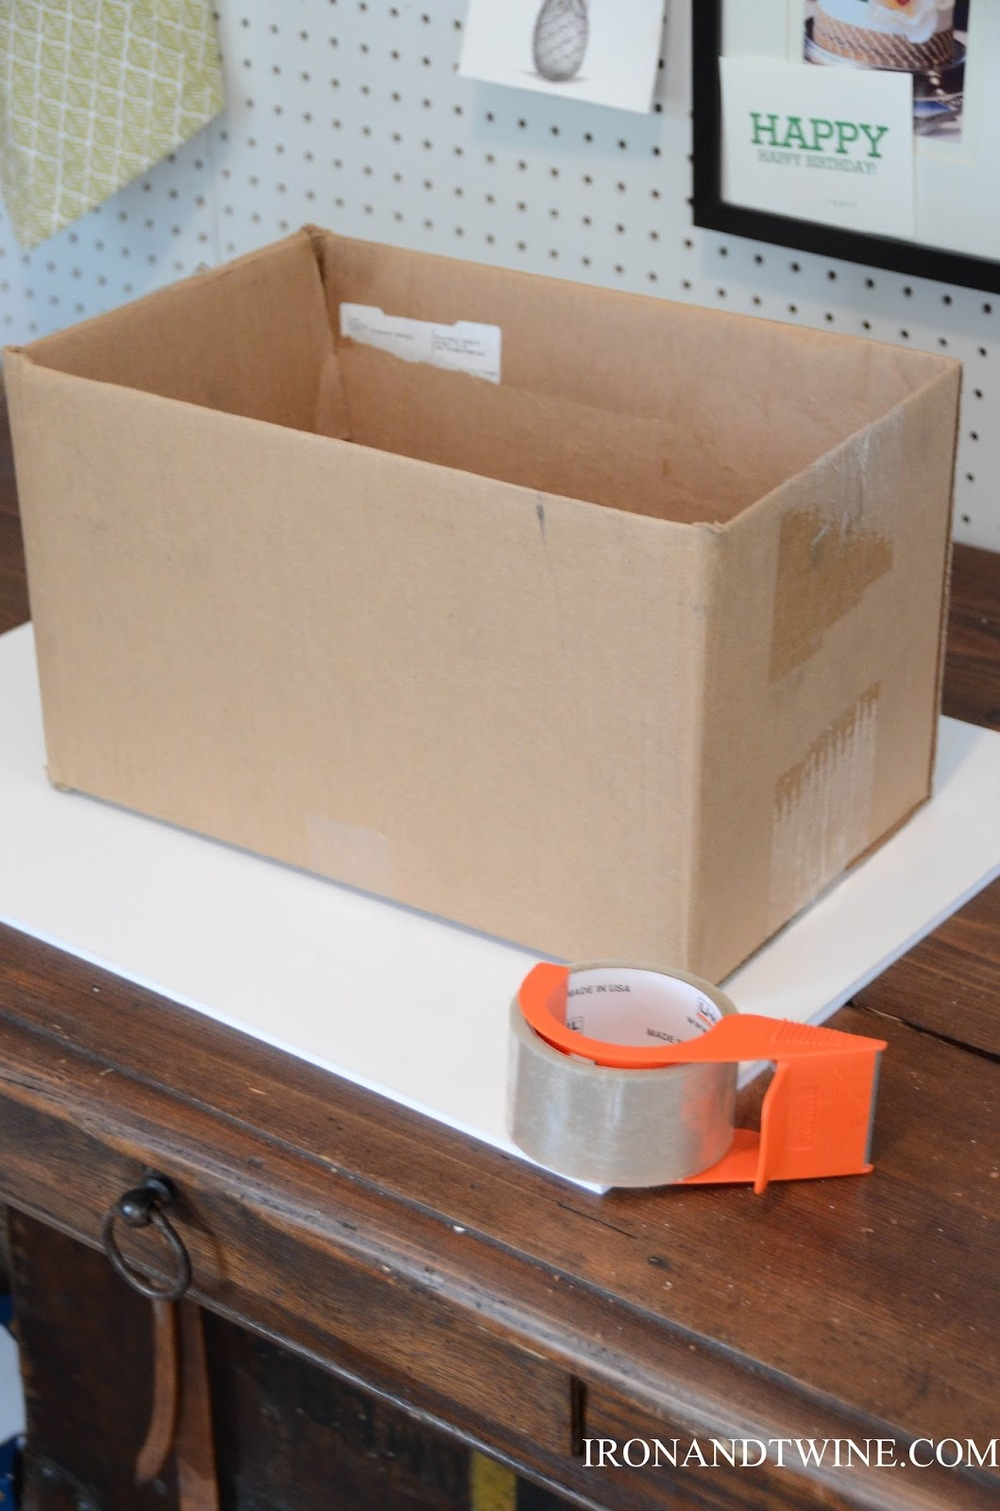 DIY+Belt+Handled+Box,+DIY+fabric+covered+box,+Iron+and+Twine+(11).jpg